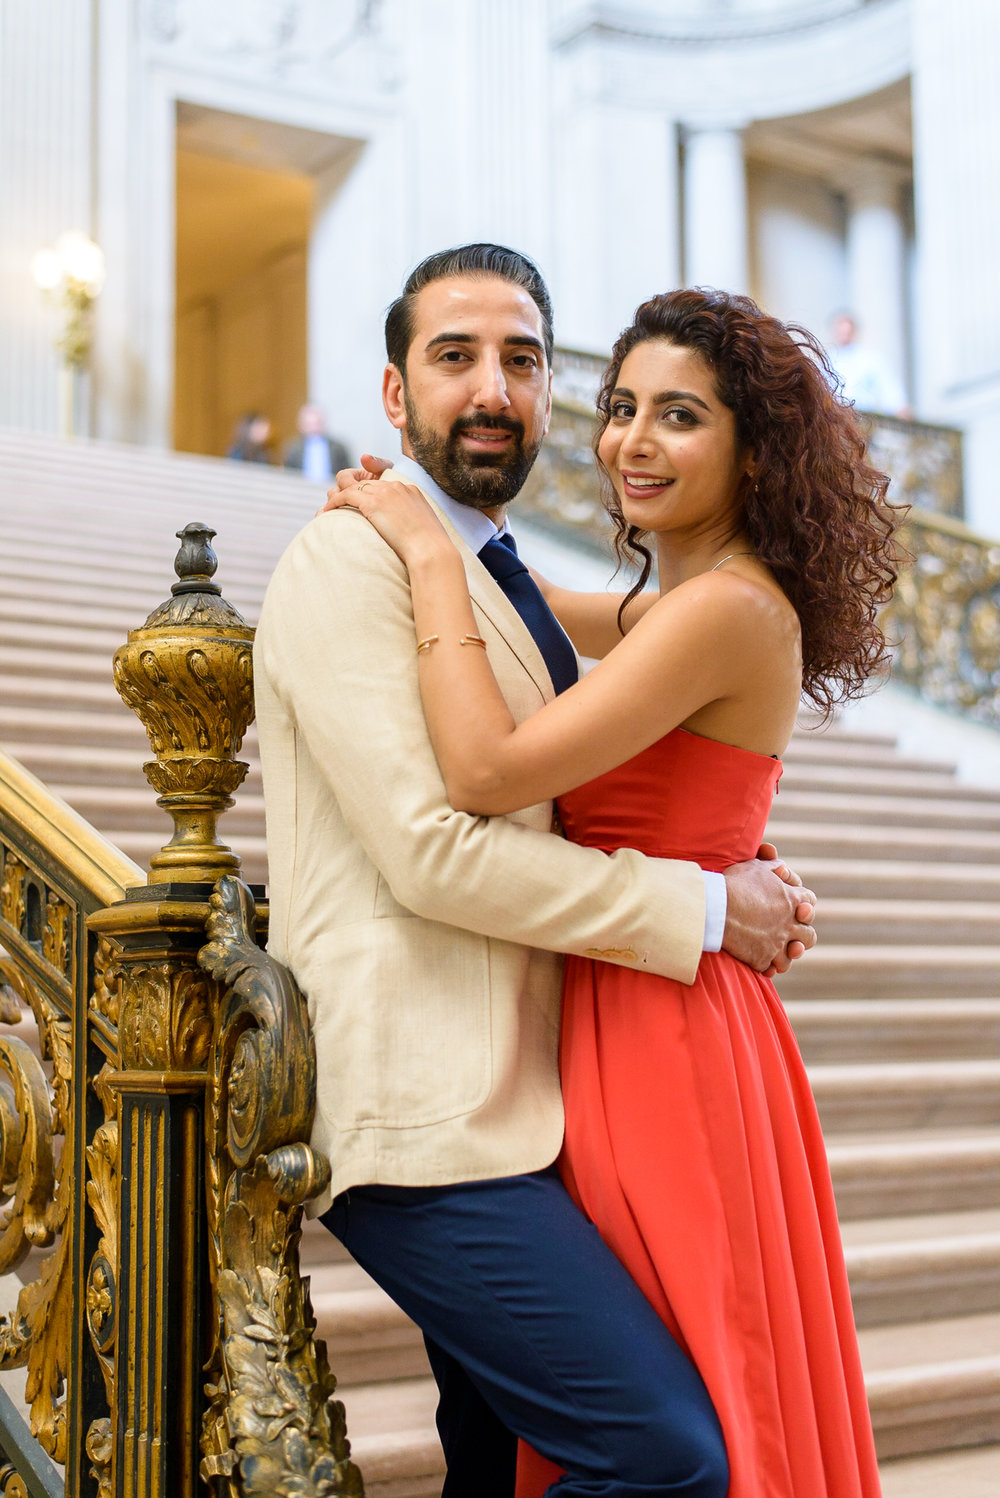 San Francisco City Hall Engagement Photo Session-7.jpg